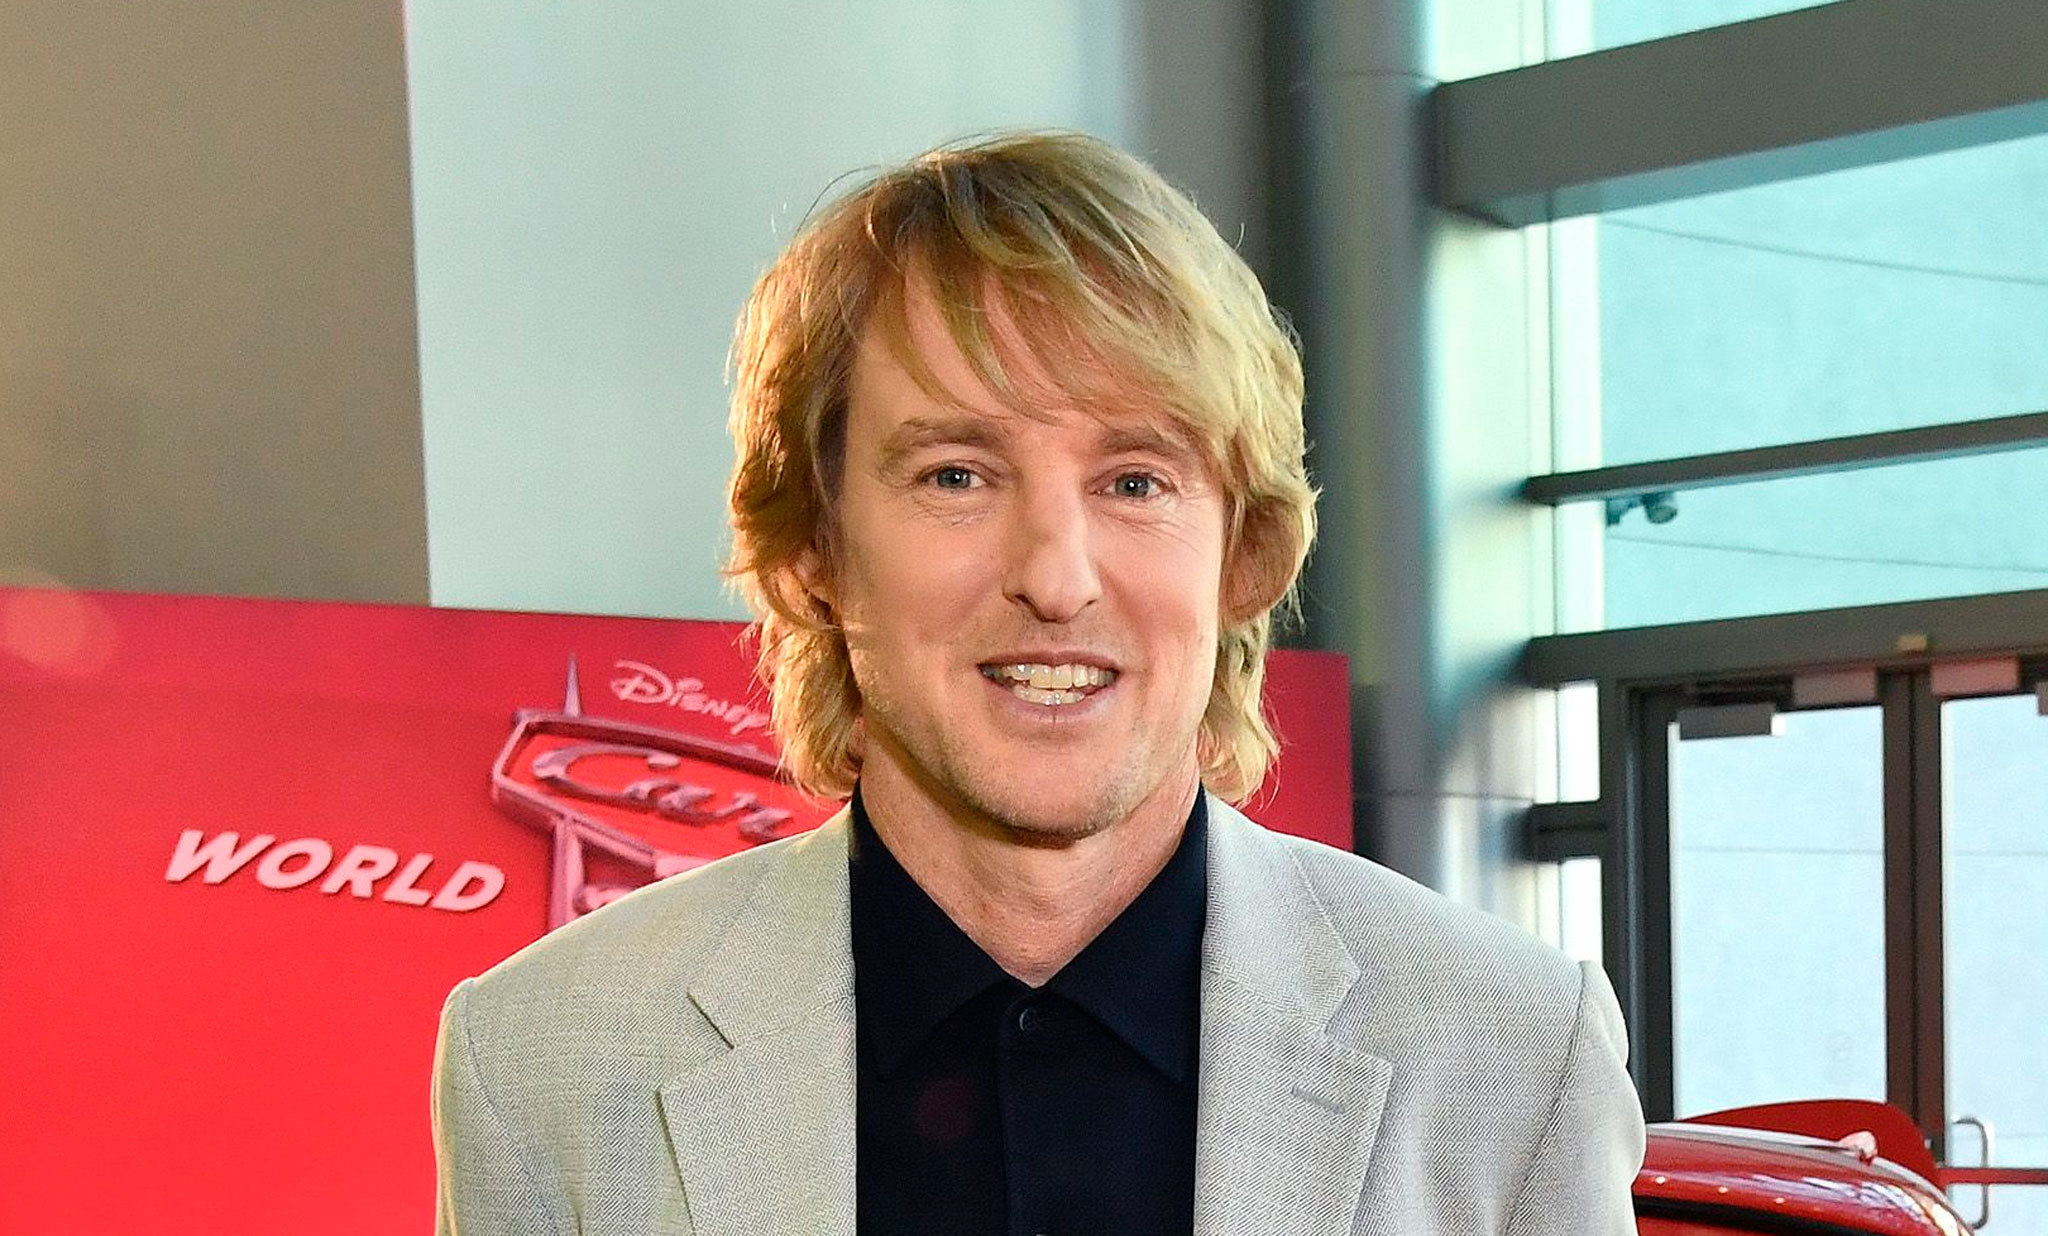 Owen Wilson: 'I get a lot of street cred for playing Lightning McQueen'